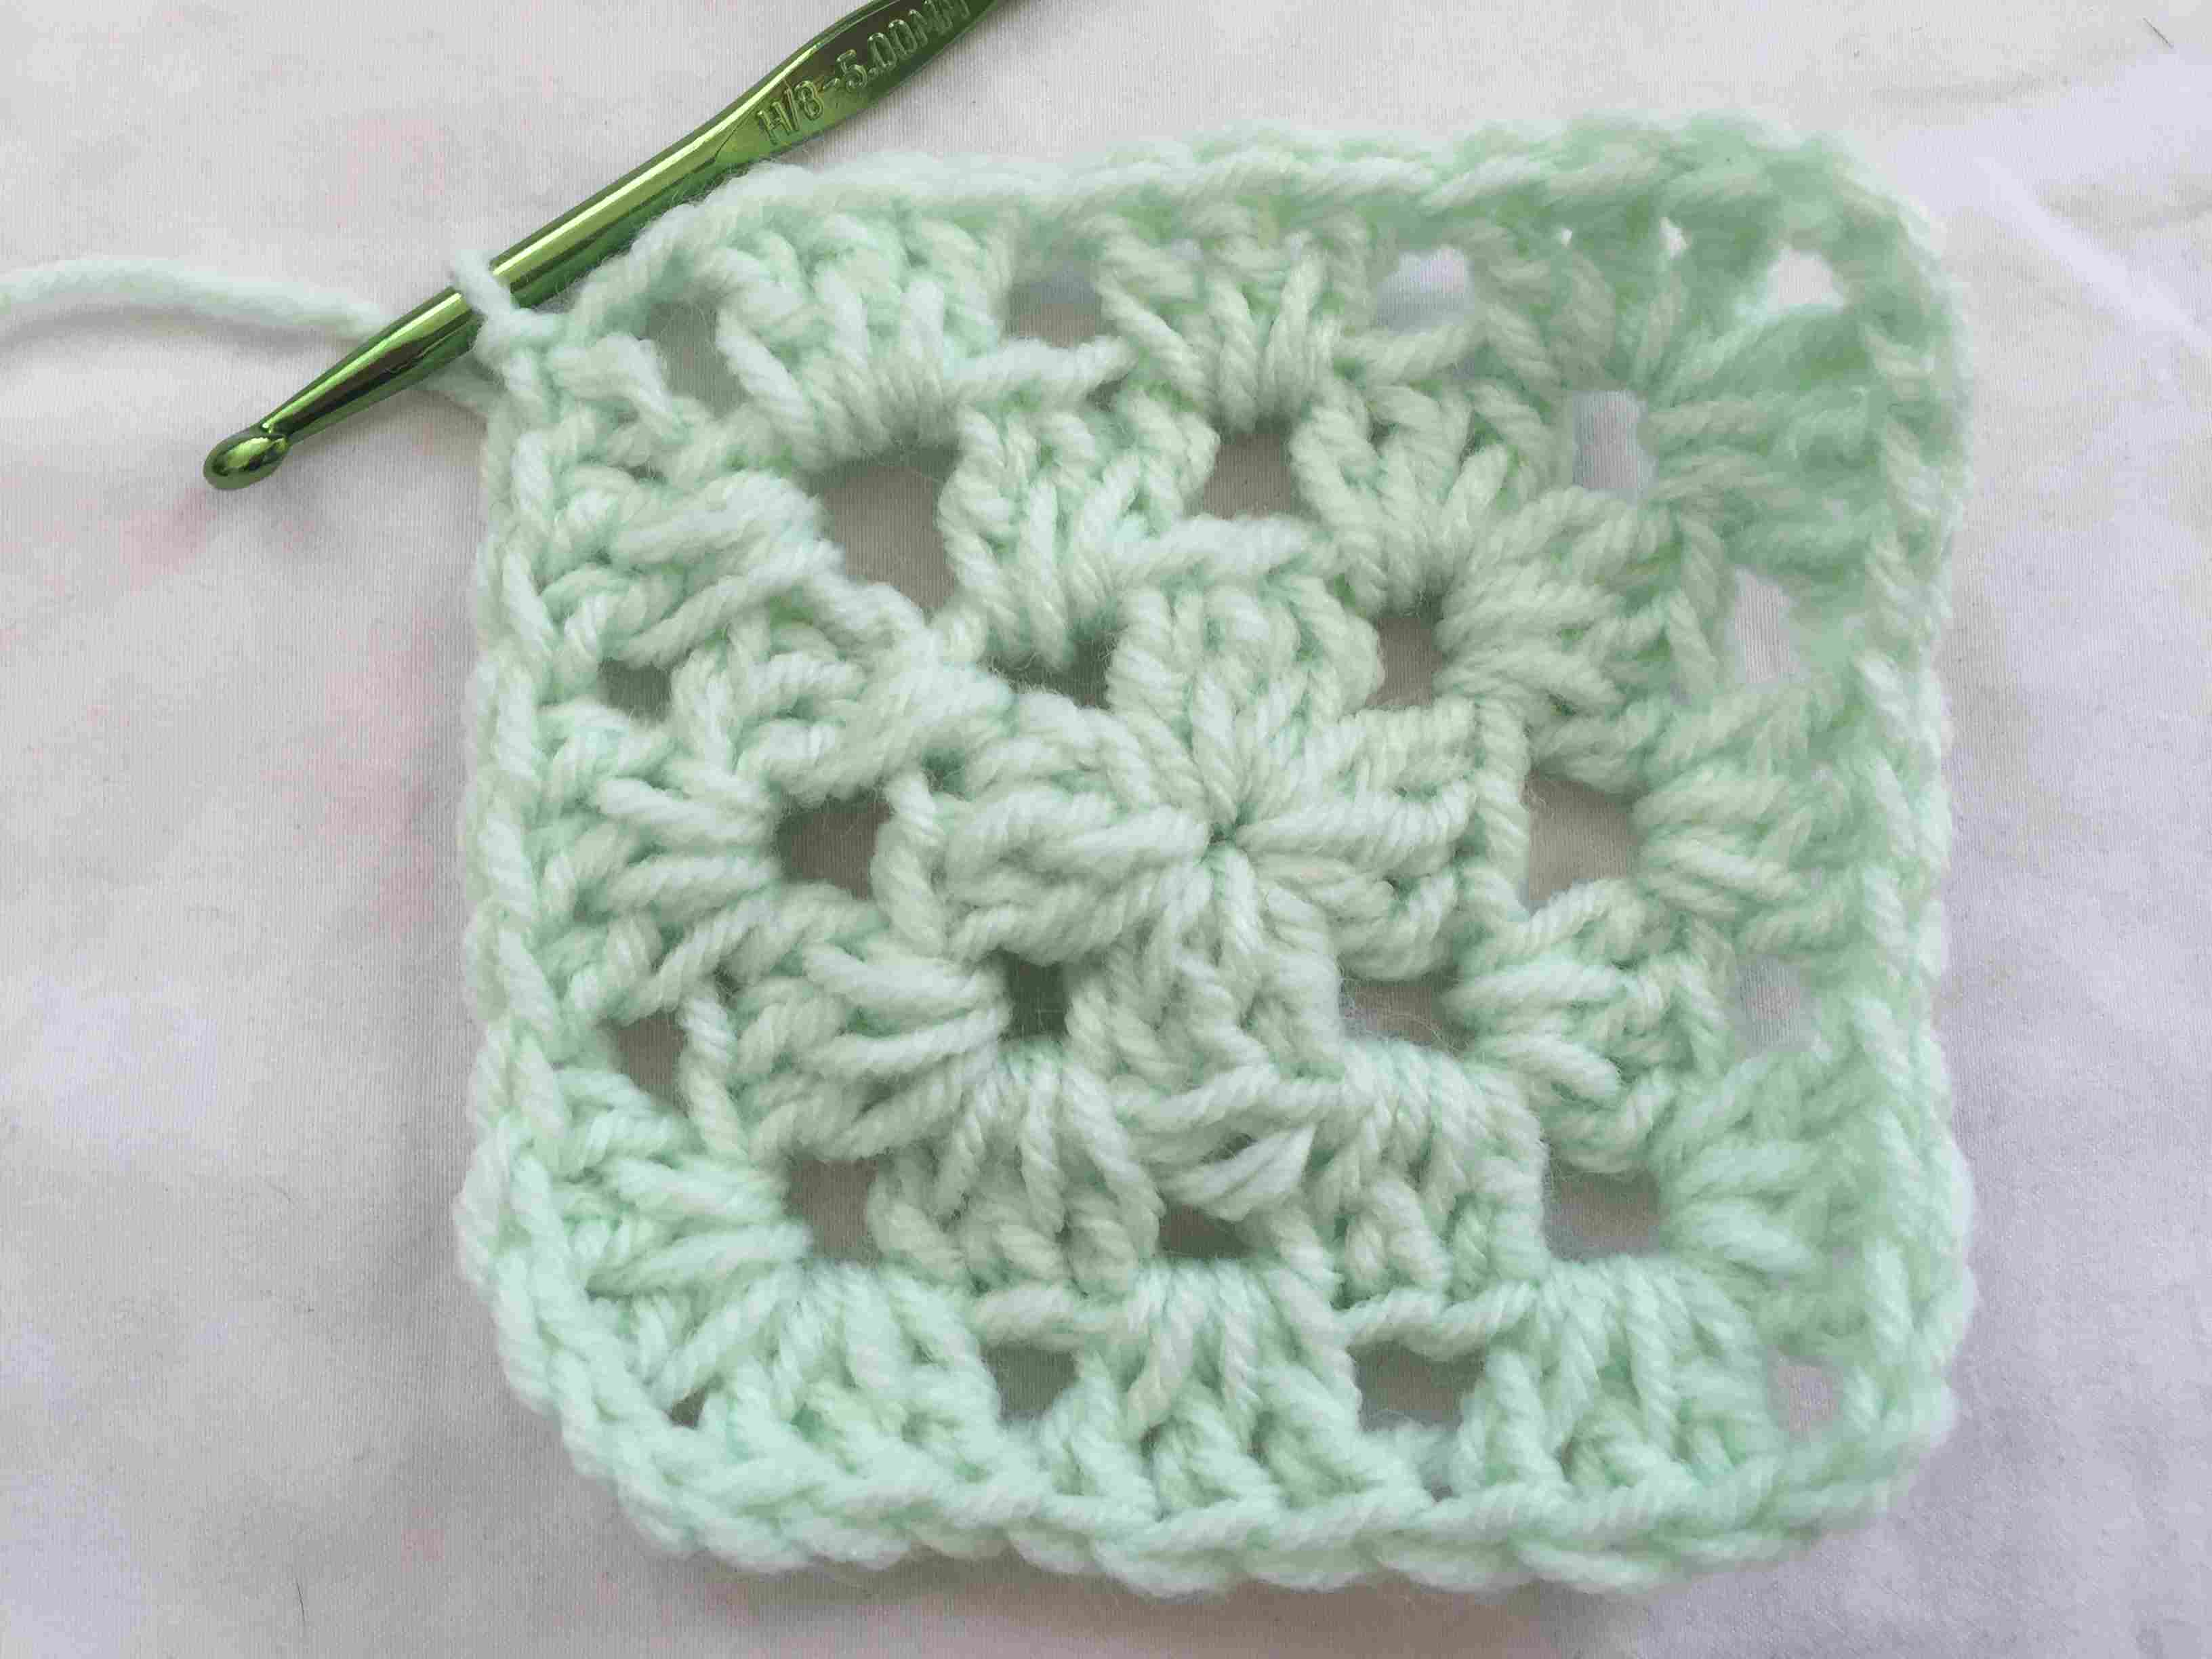 Free Scrap Yarn Patterns For Crochet - Free Printable Crochet Granny Square Patterns